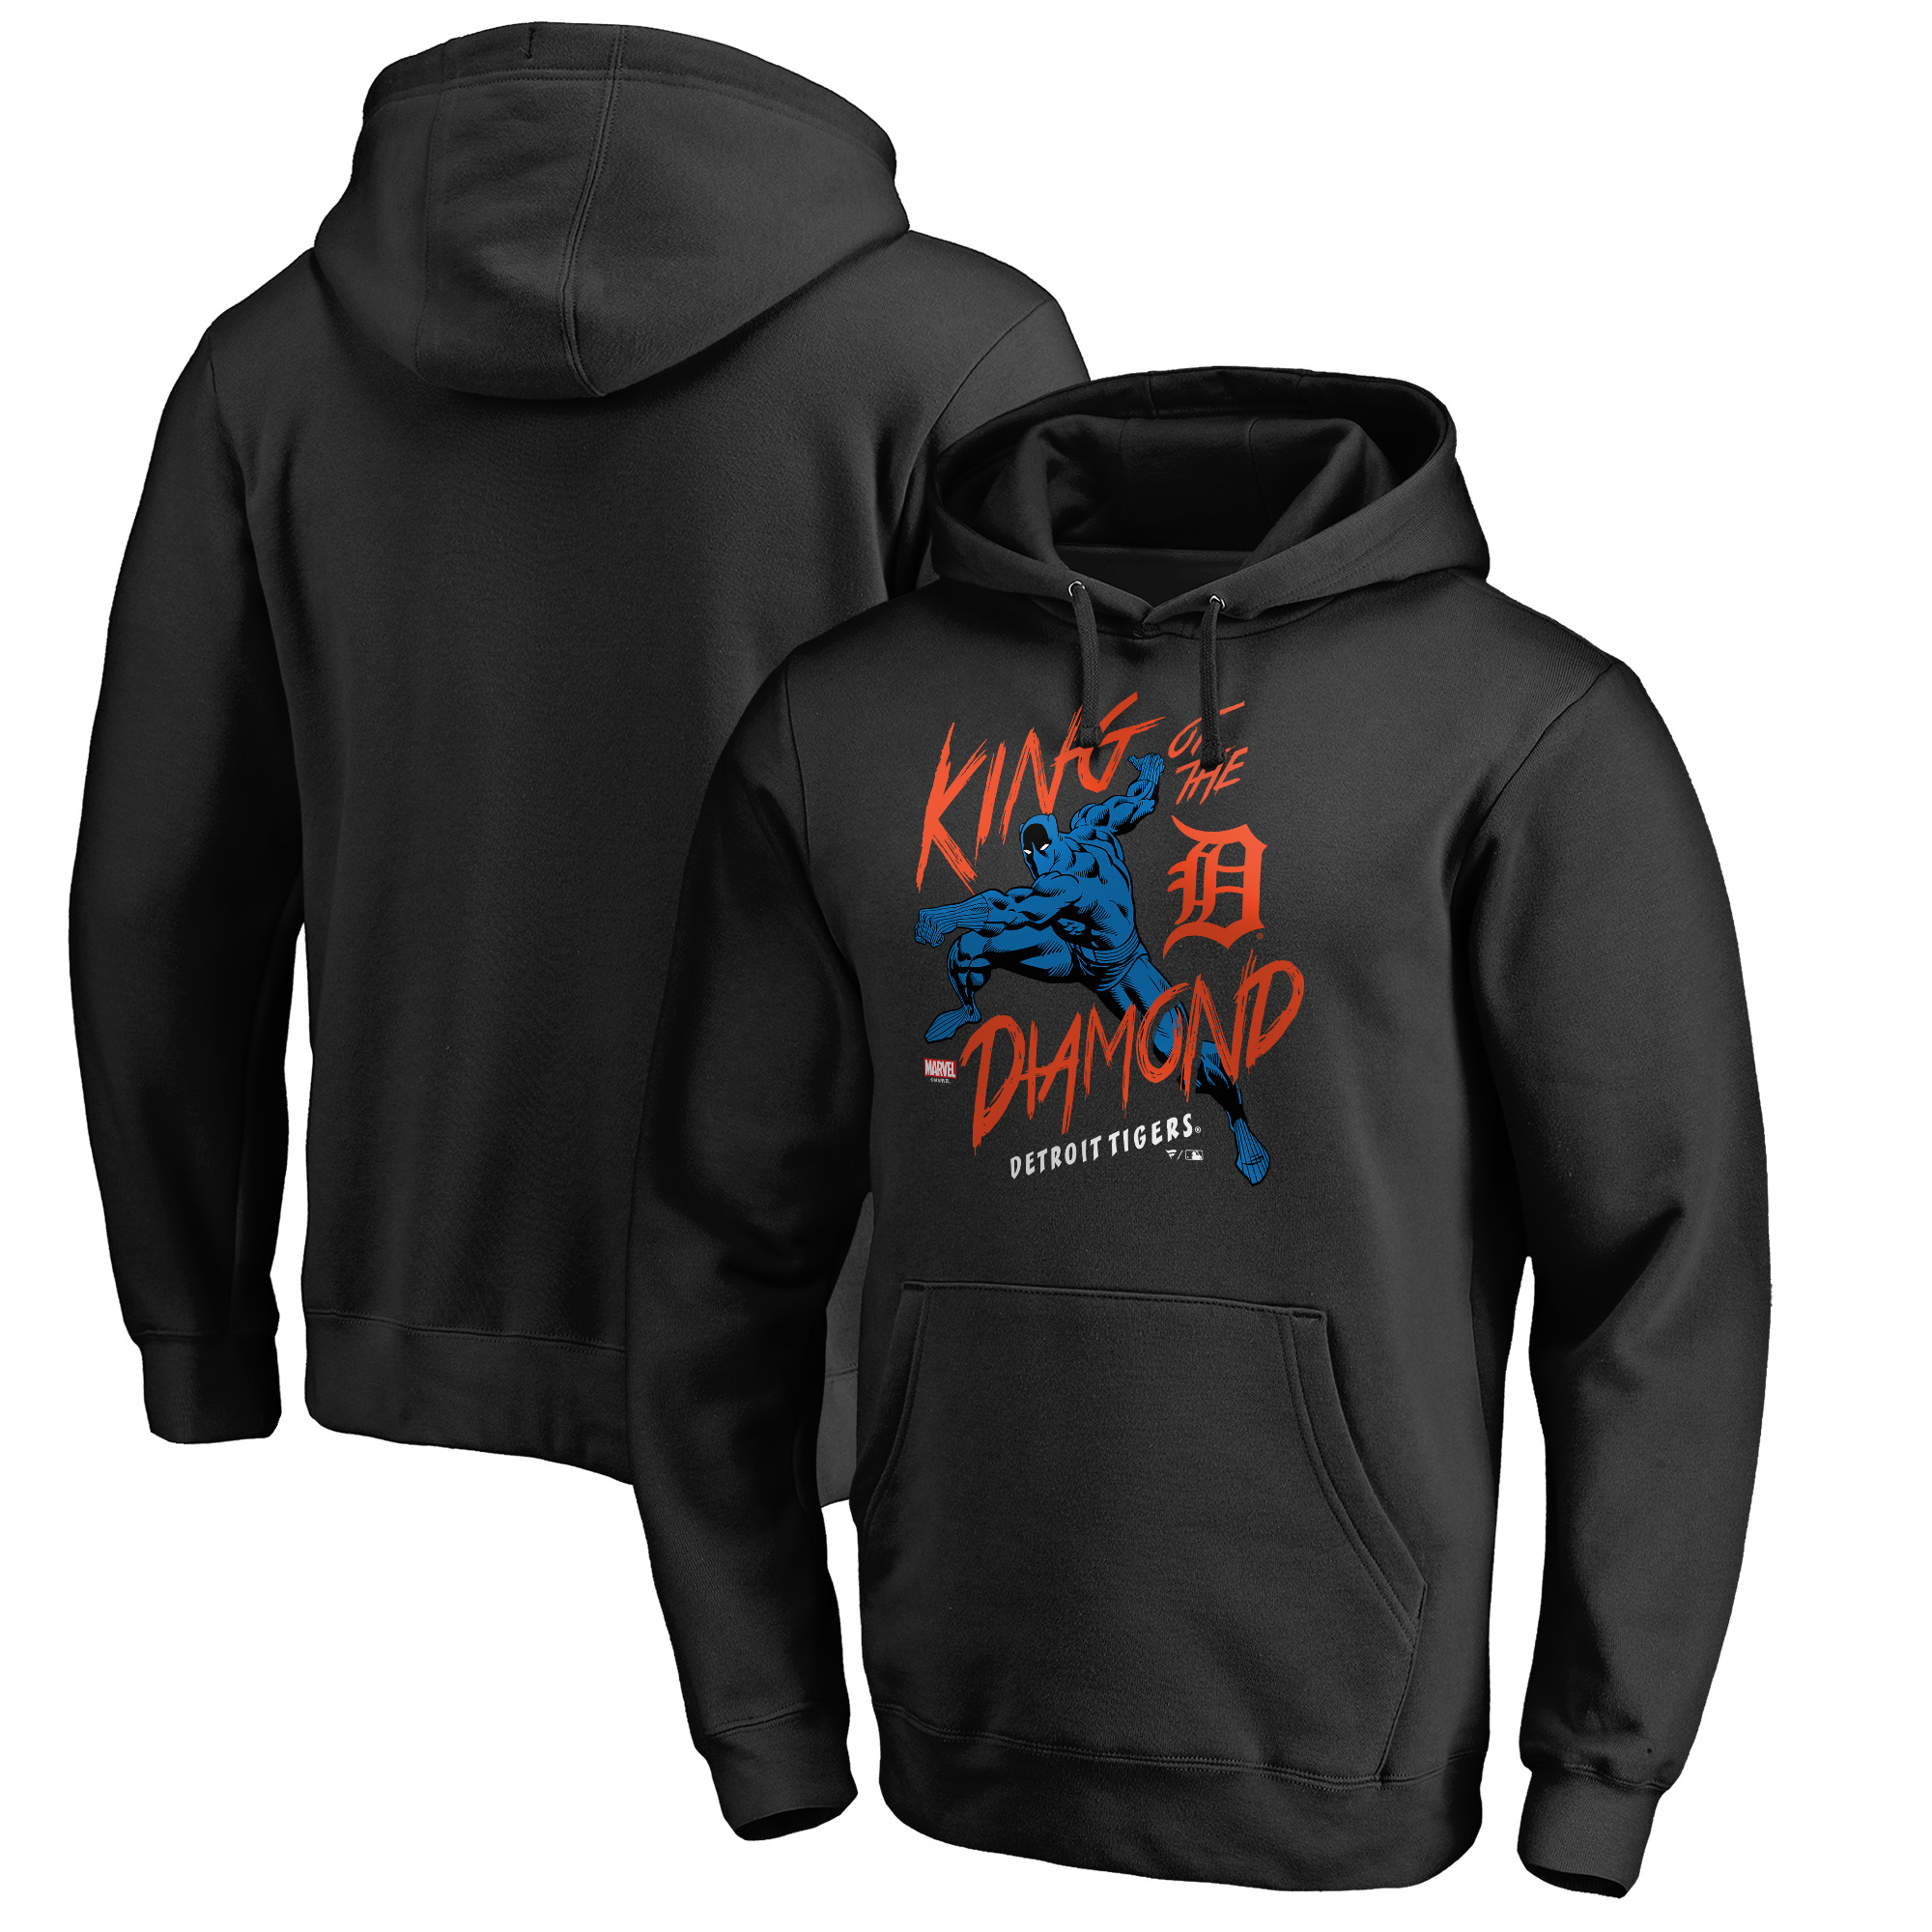 Detroit Tigers Fanatics Branded MLB Marvel Black Panther King of the Diamond Pullover Hoodie - Black